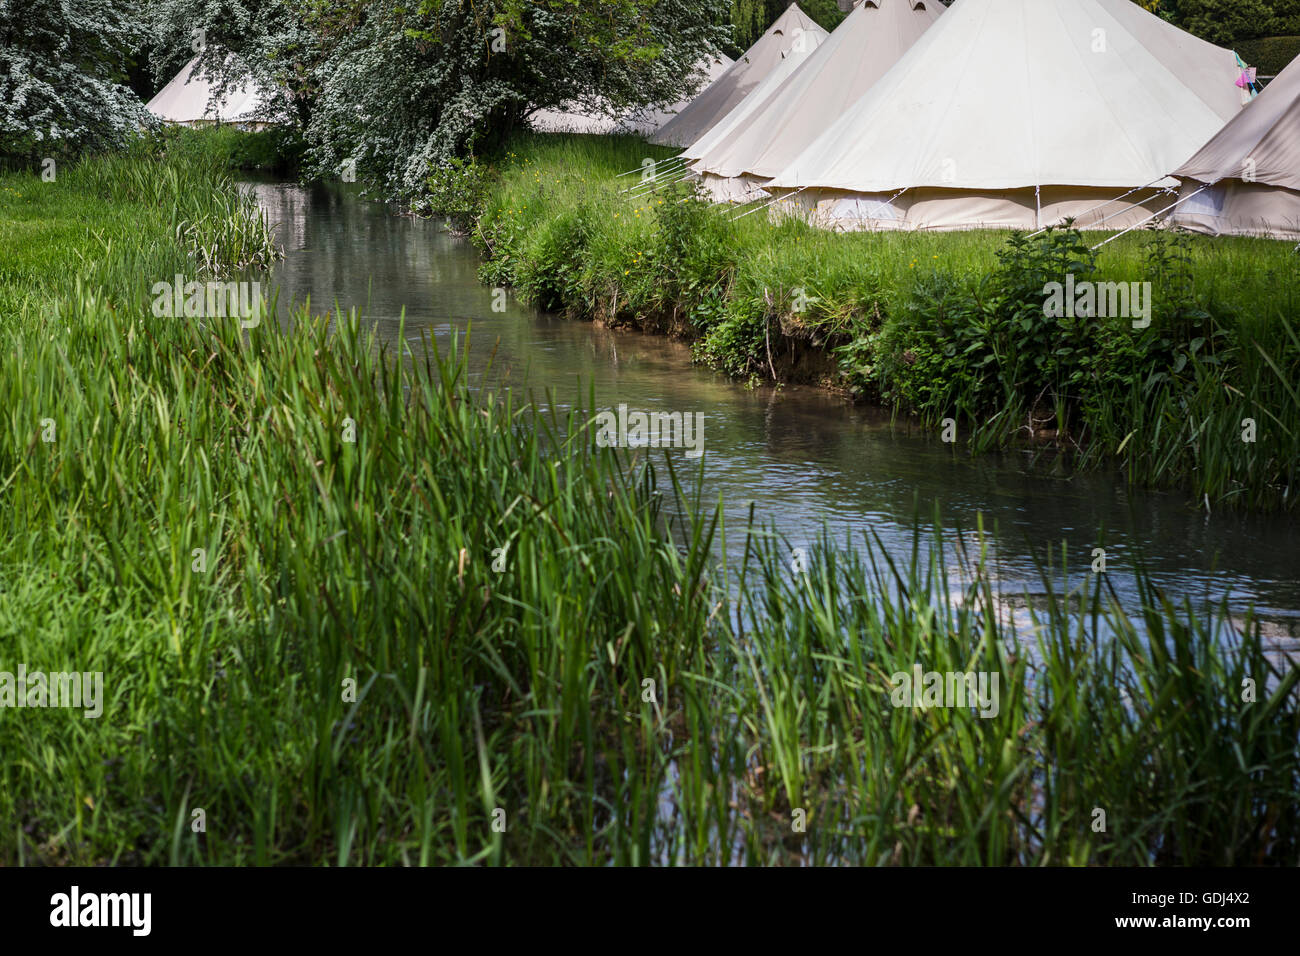 Canvas Tents Stock Photos & Canvas Tents Stock Images - Alamy